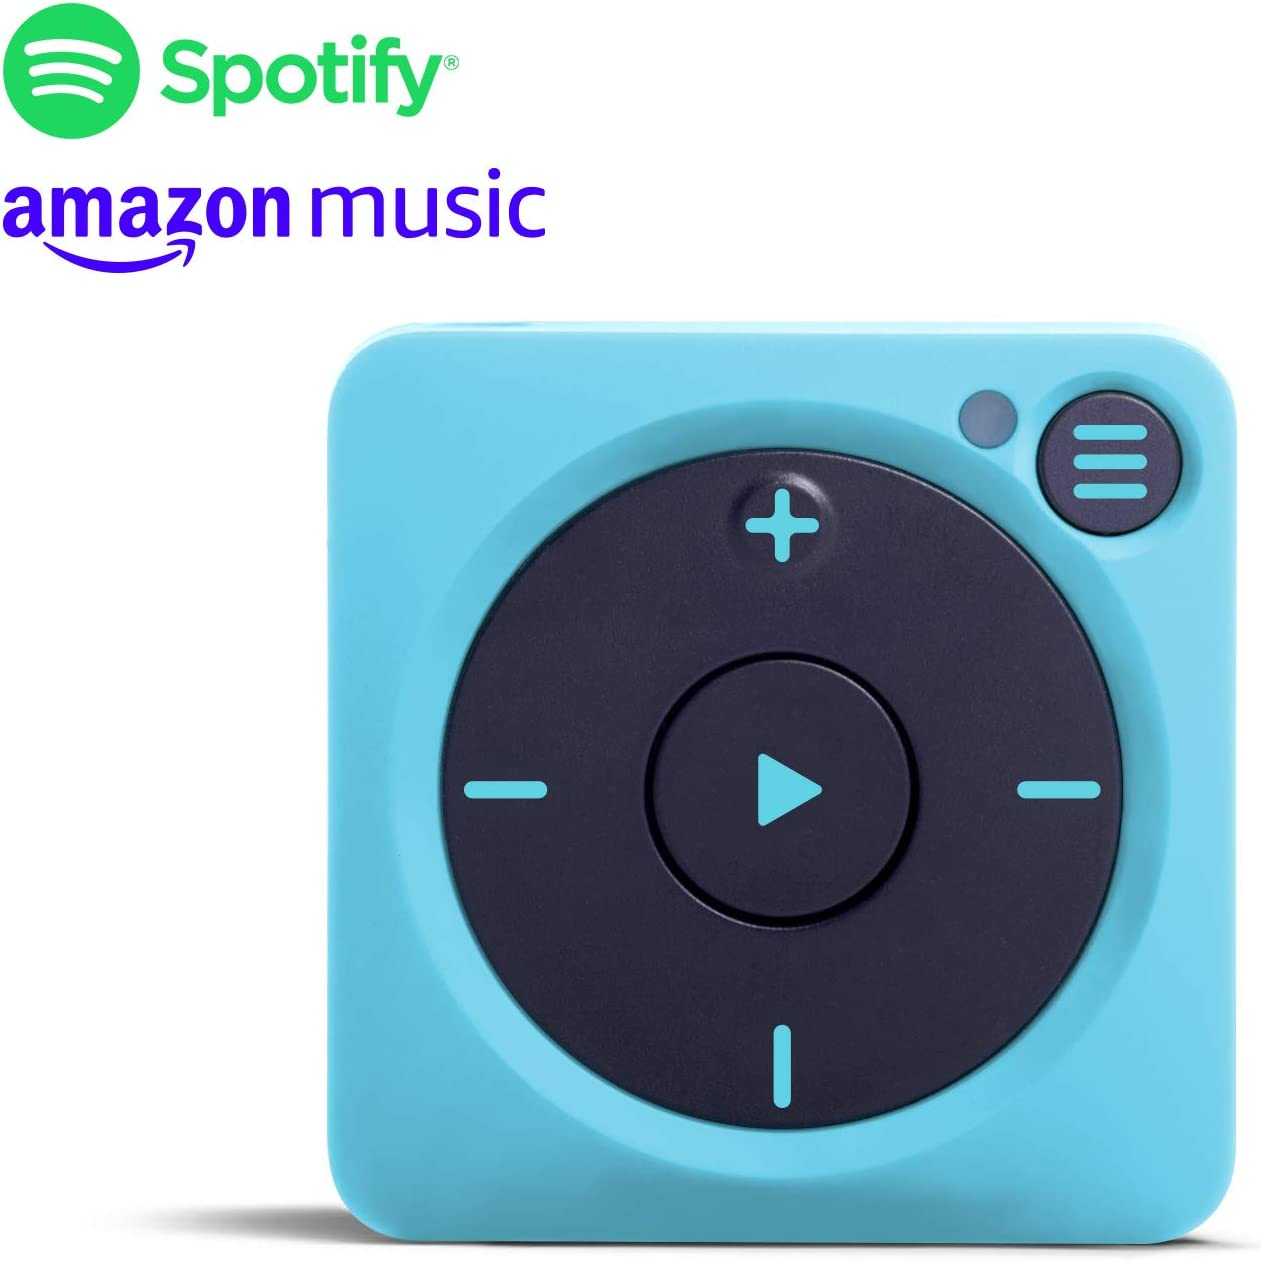 Mighty Vibe Spotify and Amazon Music Player - Bluetooth & Wired Headphones - 1,000+ Song Storage - No Phone Needed - Blue